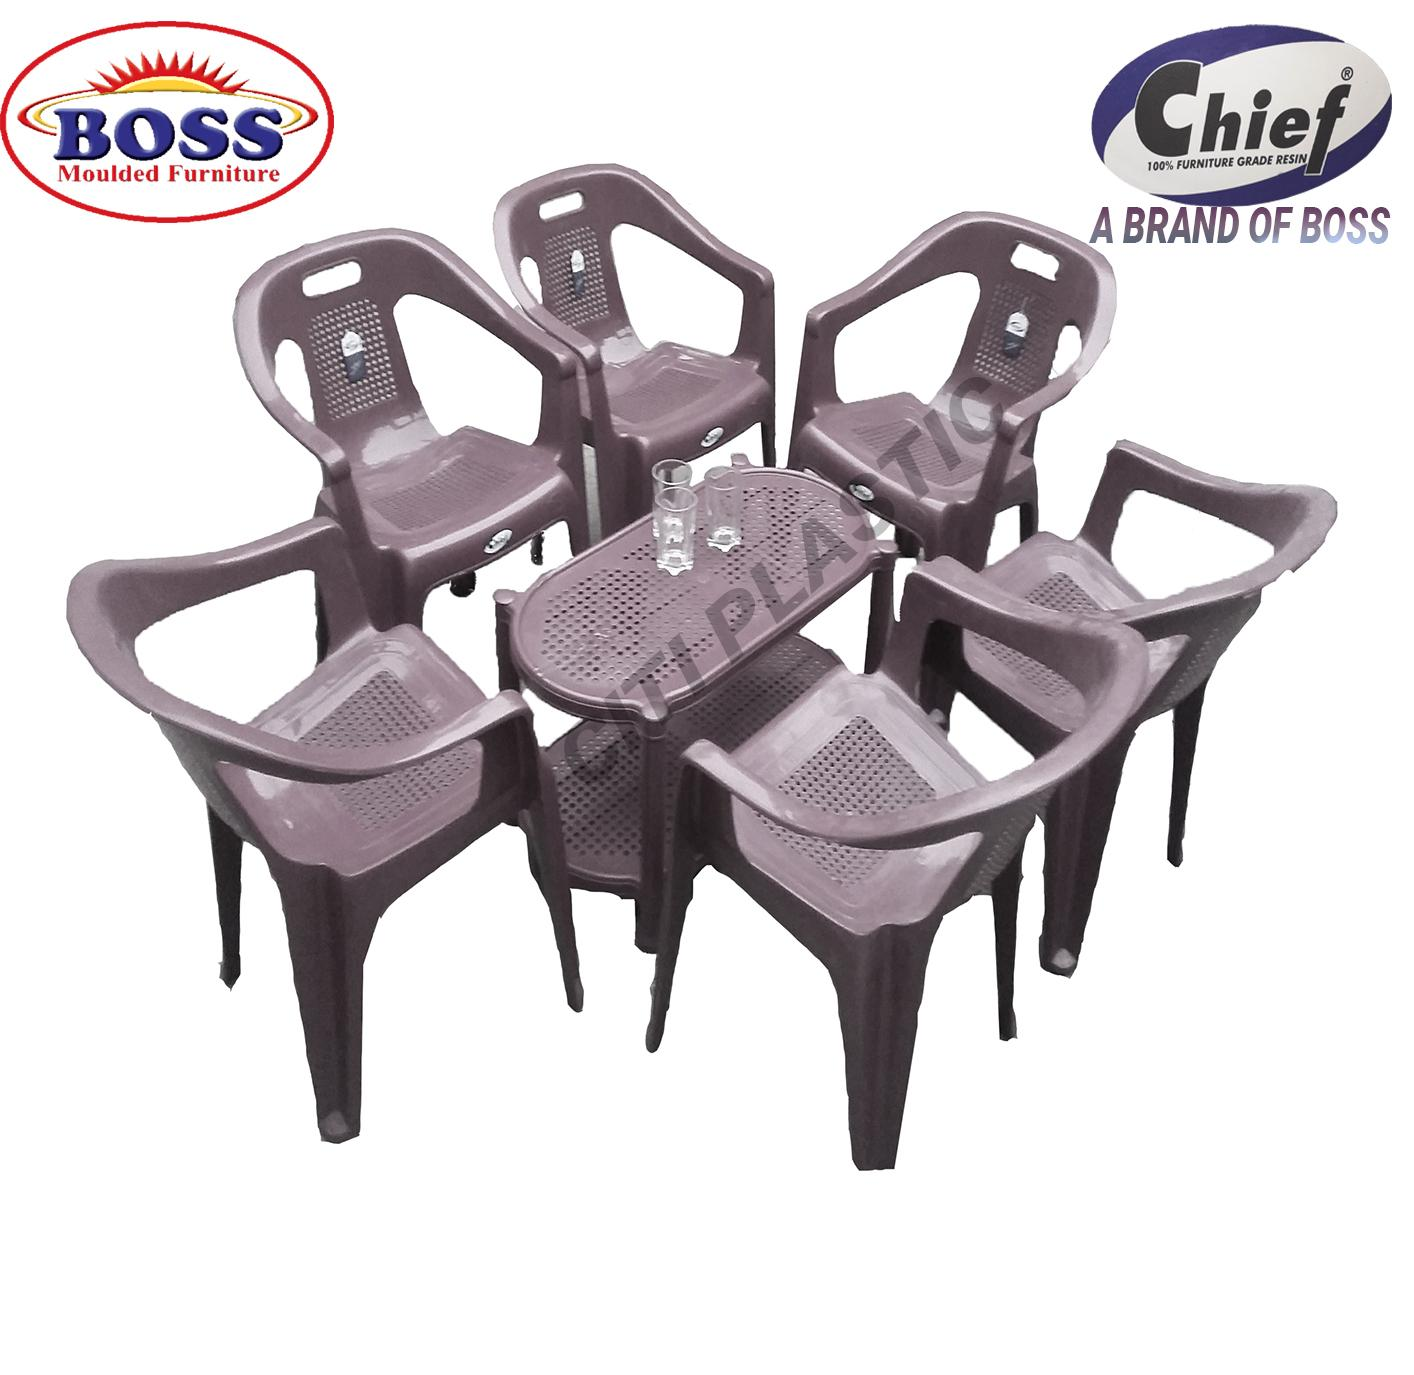 Möbel Boss Big Sofa Swing Chief Boss Set Of 6 Plastic Chairs And Plastic Table Grey